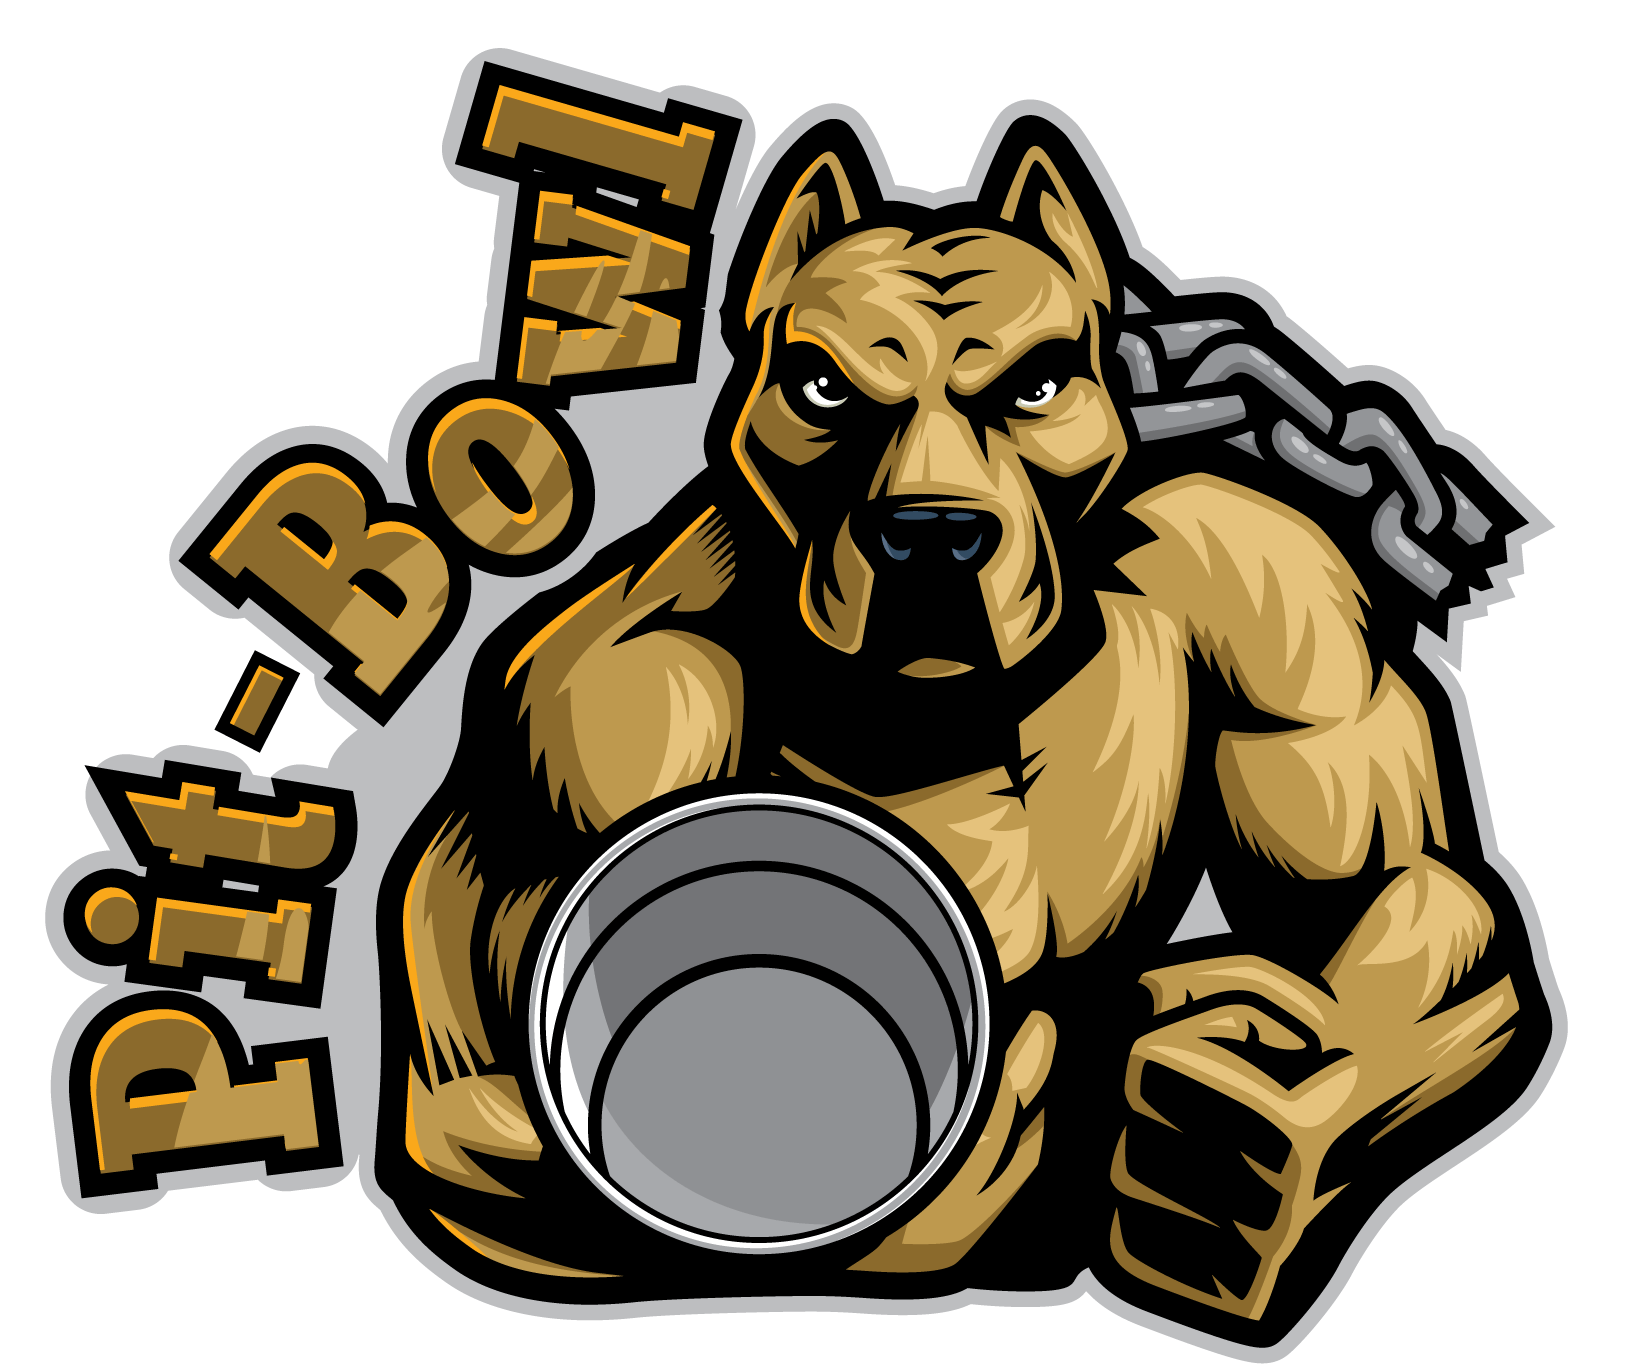 Dog crate clipart clip art library stock Pit-Bowl | CR82 Stainless Steel Dog Crate Bowl clip art library stock